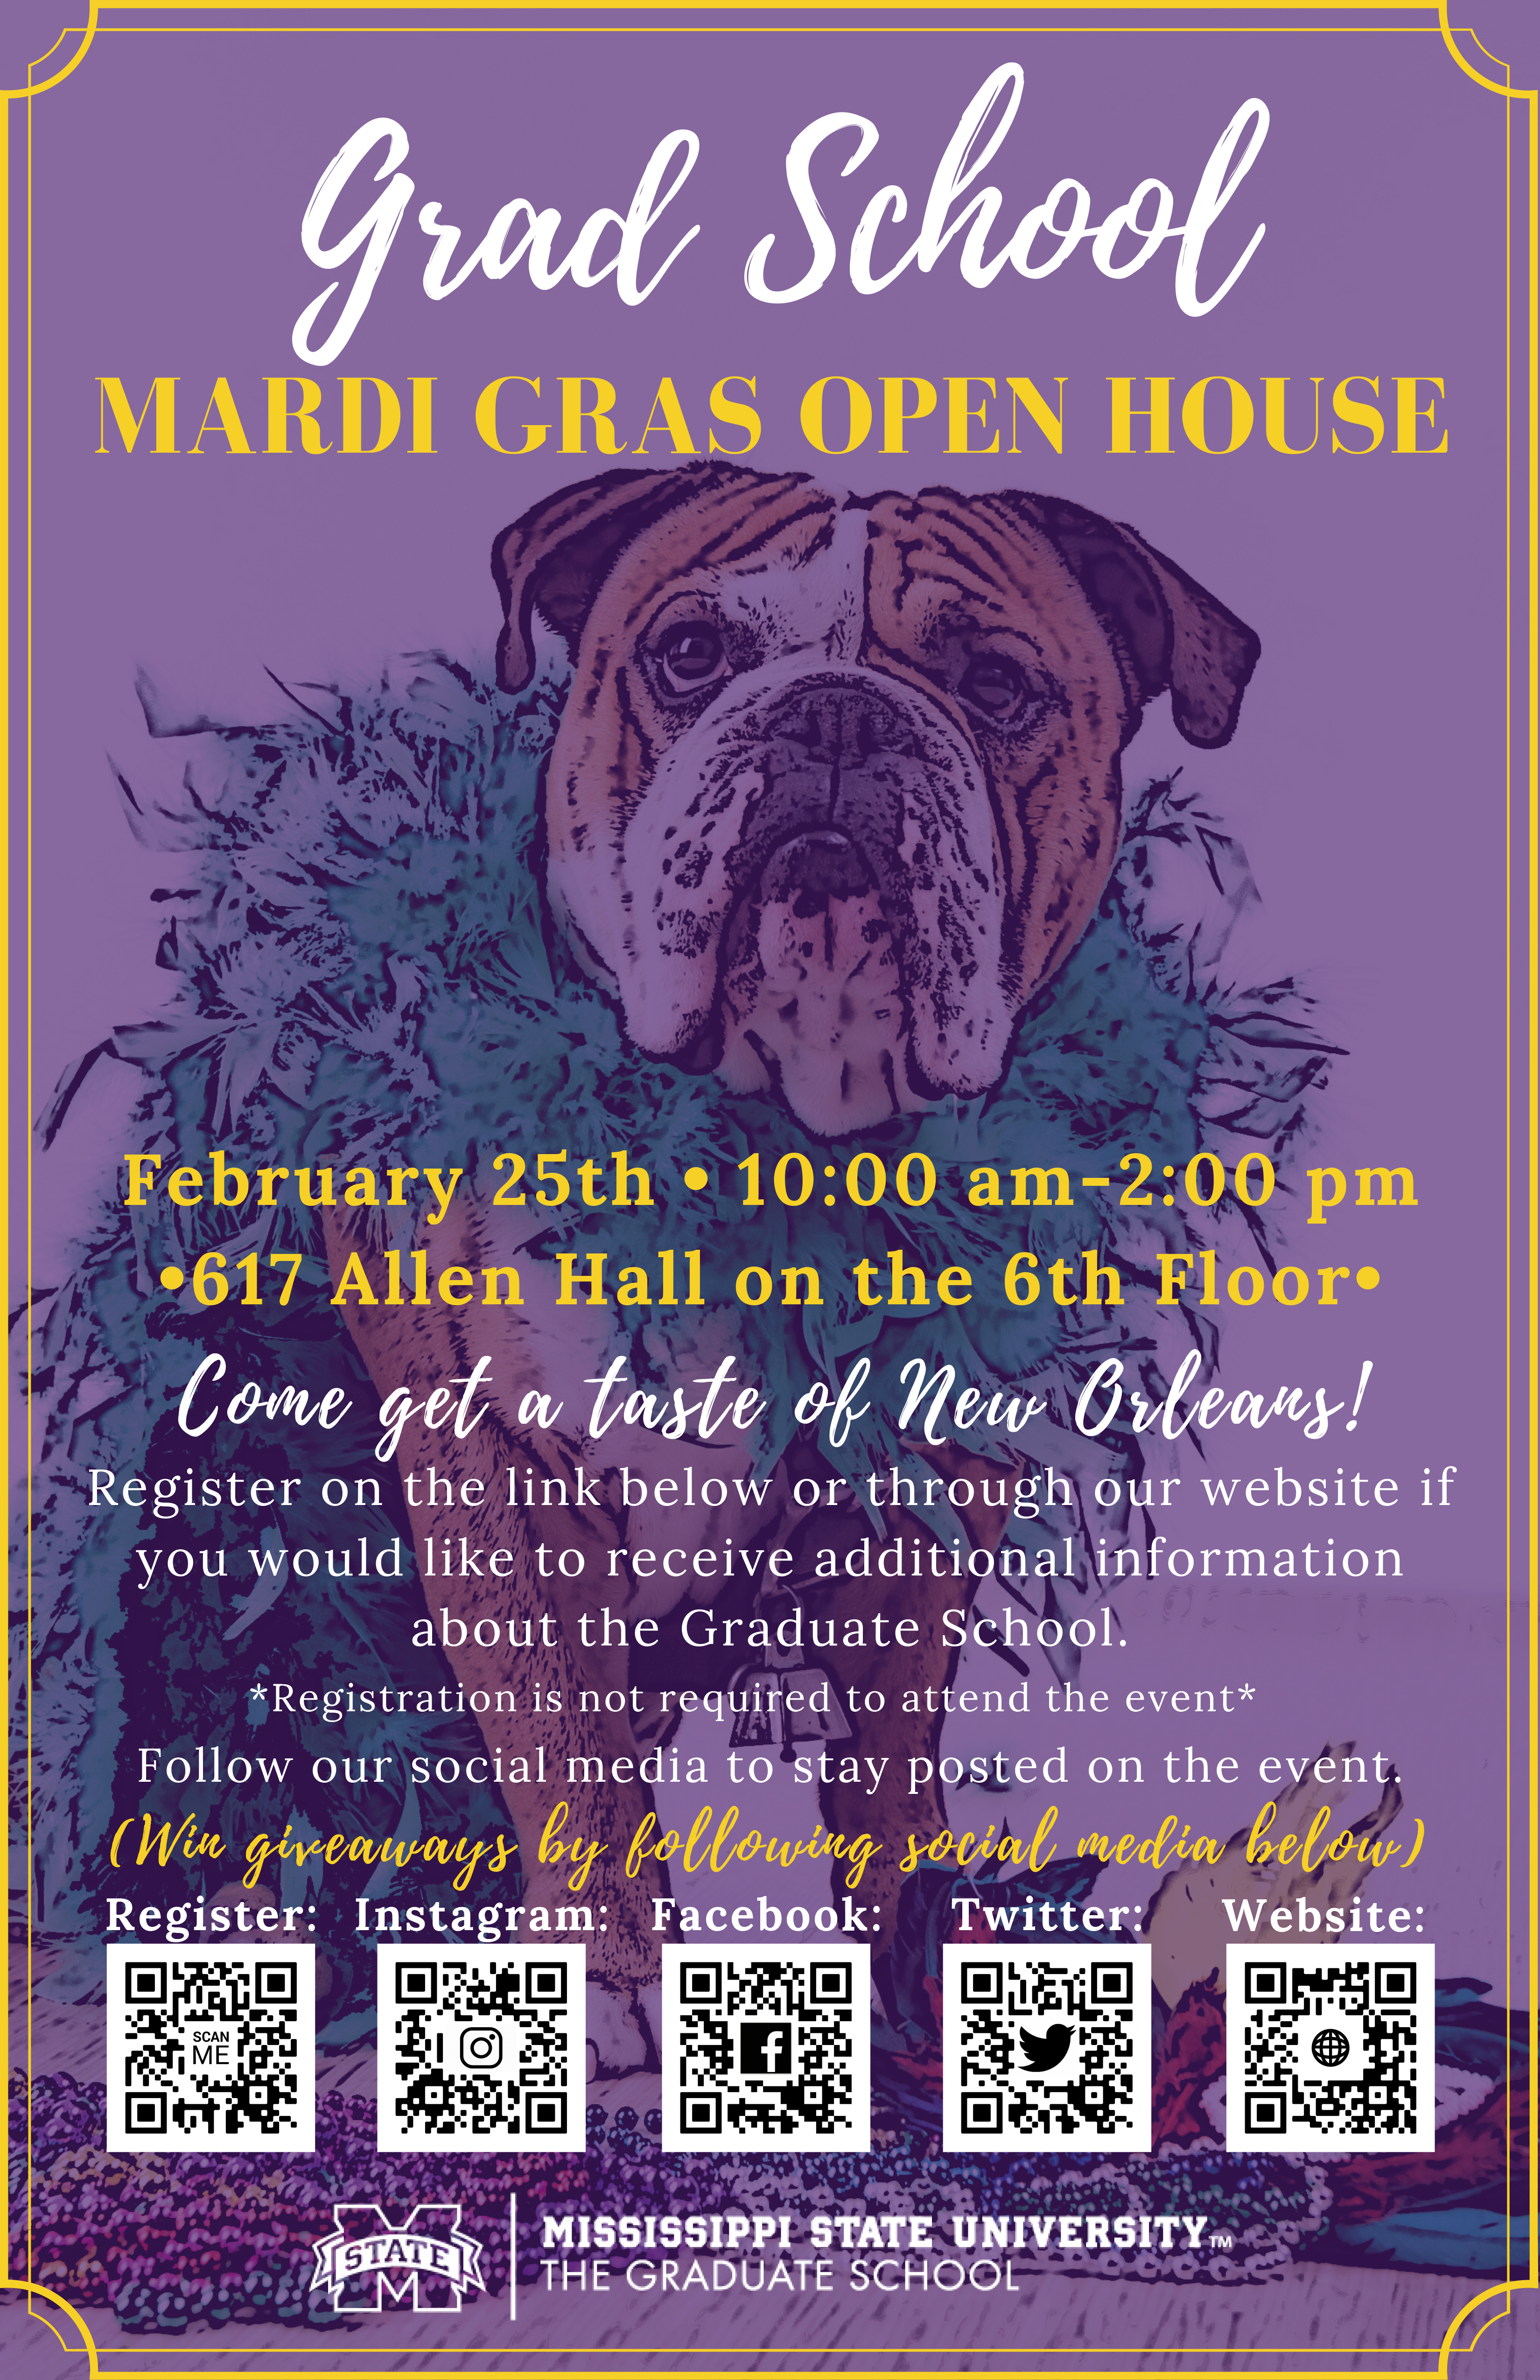 Promotional graphic for the MSU Graduate School's Mardi Gras Open House